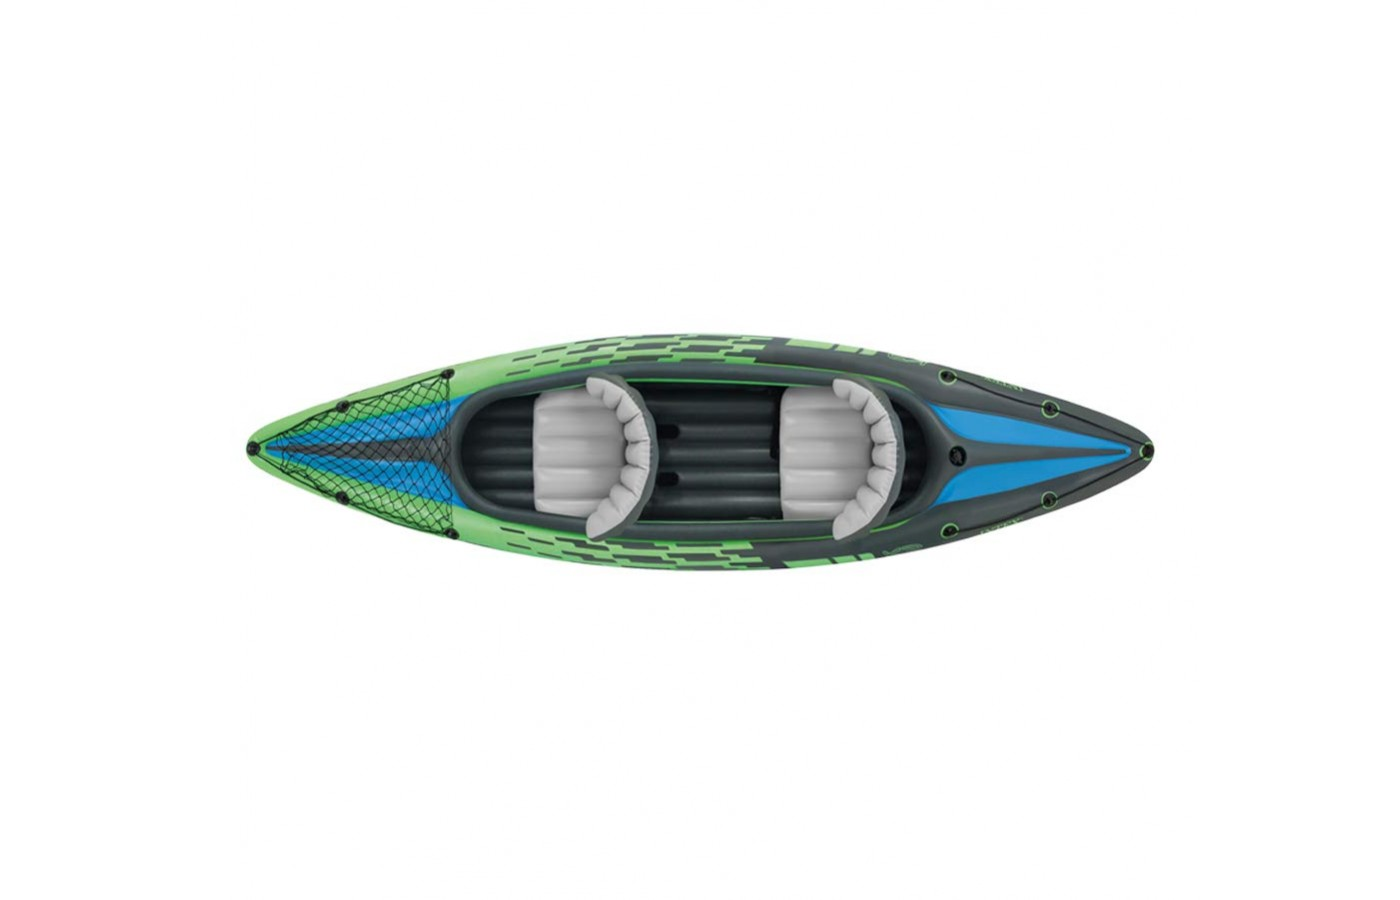 Intex Challenger K2 Kayak is a 2-person kayak for fun with others.